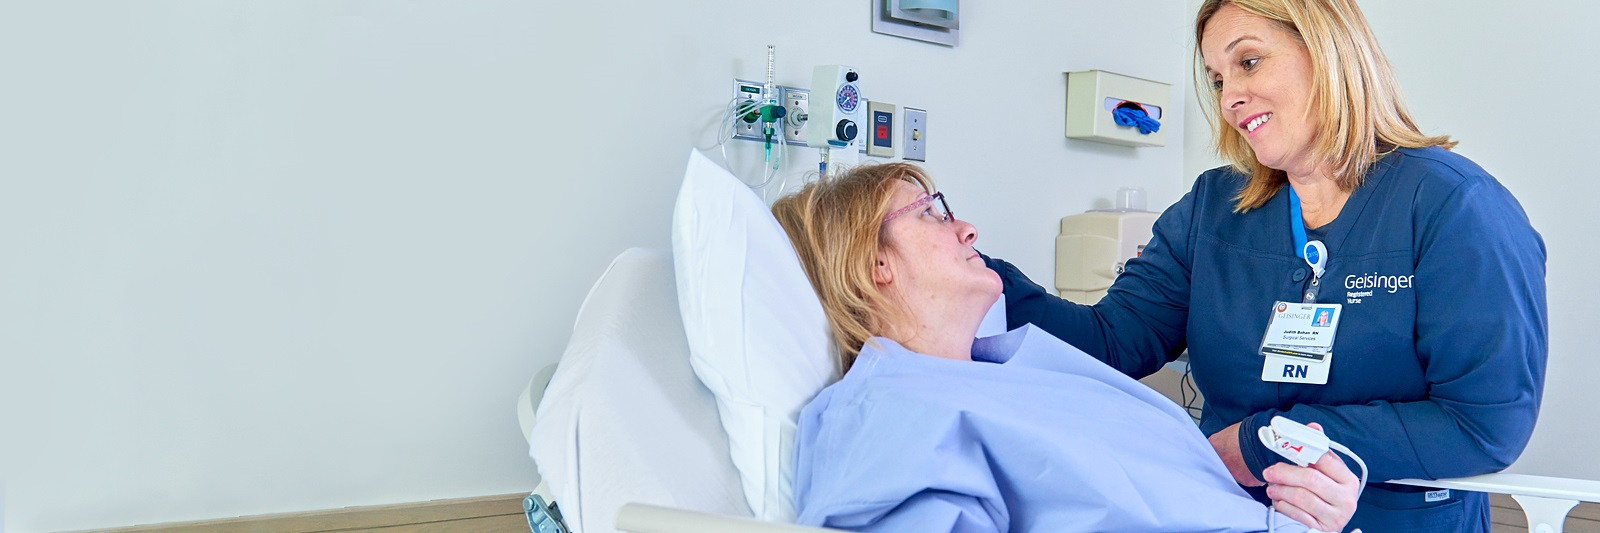 Nurse talking with patient in bed